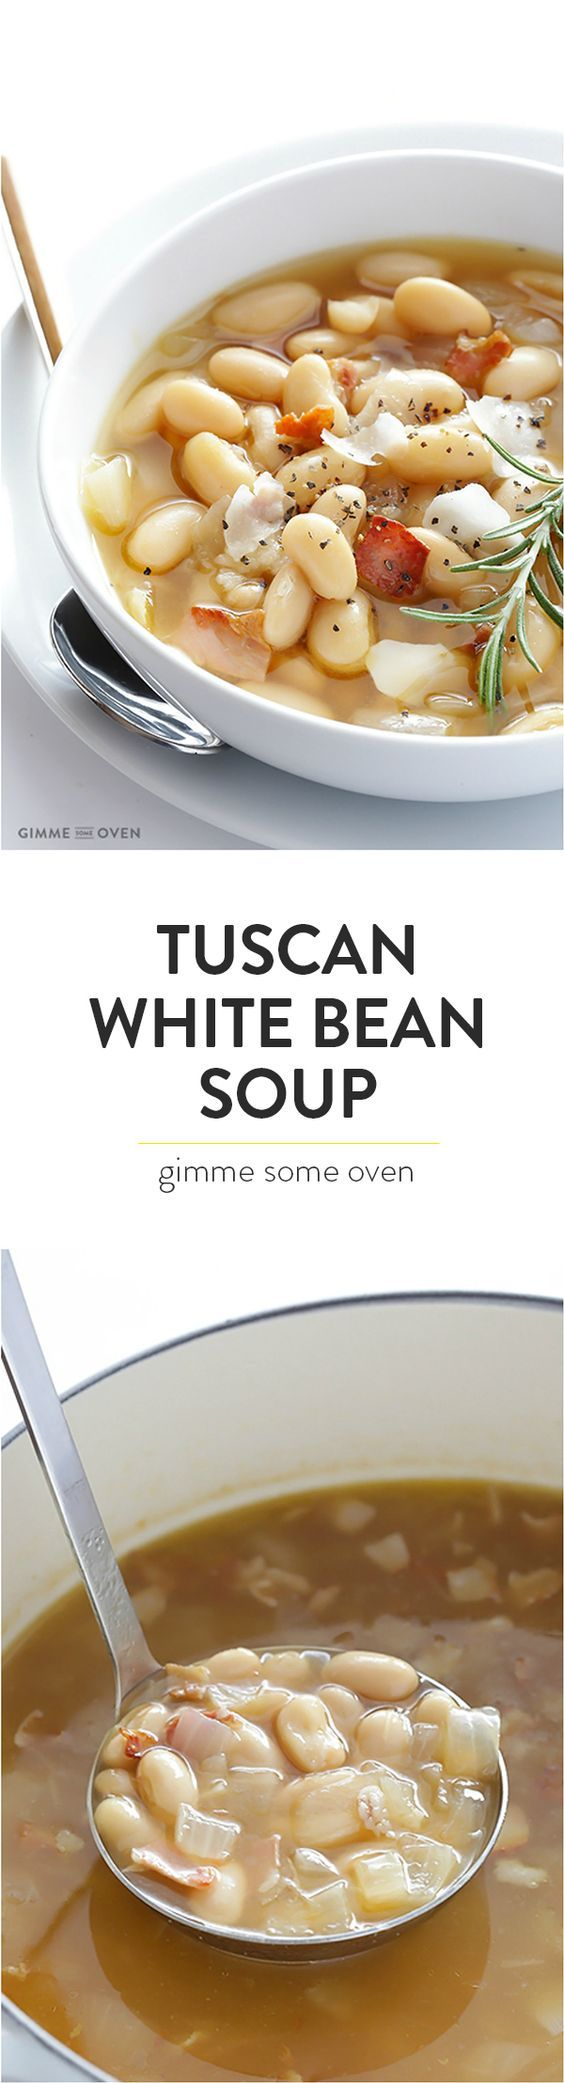 7-Ingredient Tuscan White Bean Soup -- this Italian recipe is made with delicious easy ingredients, and ready to go in about 30 minutes! | gimmesomeoven.com: